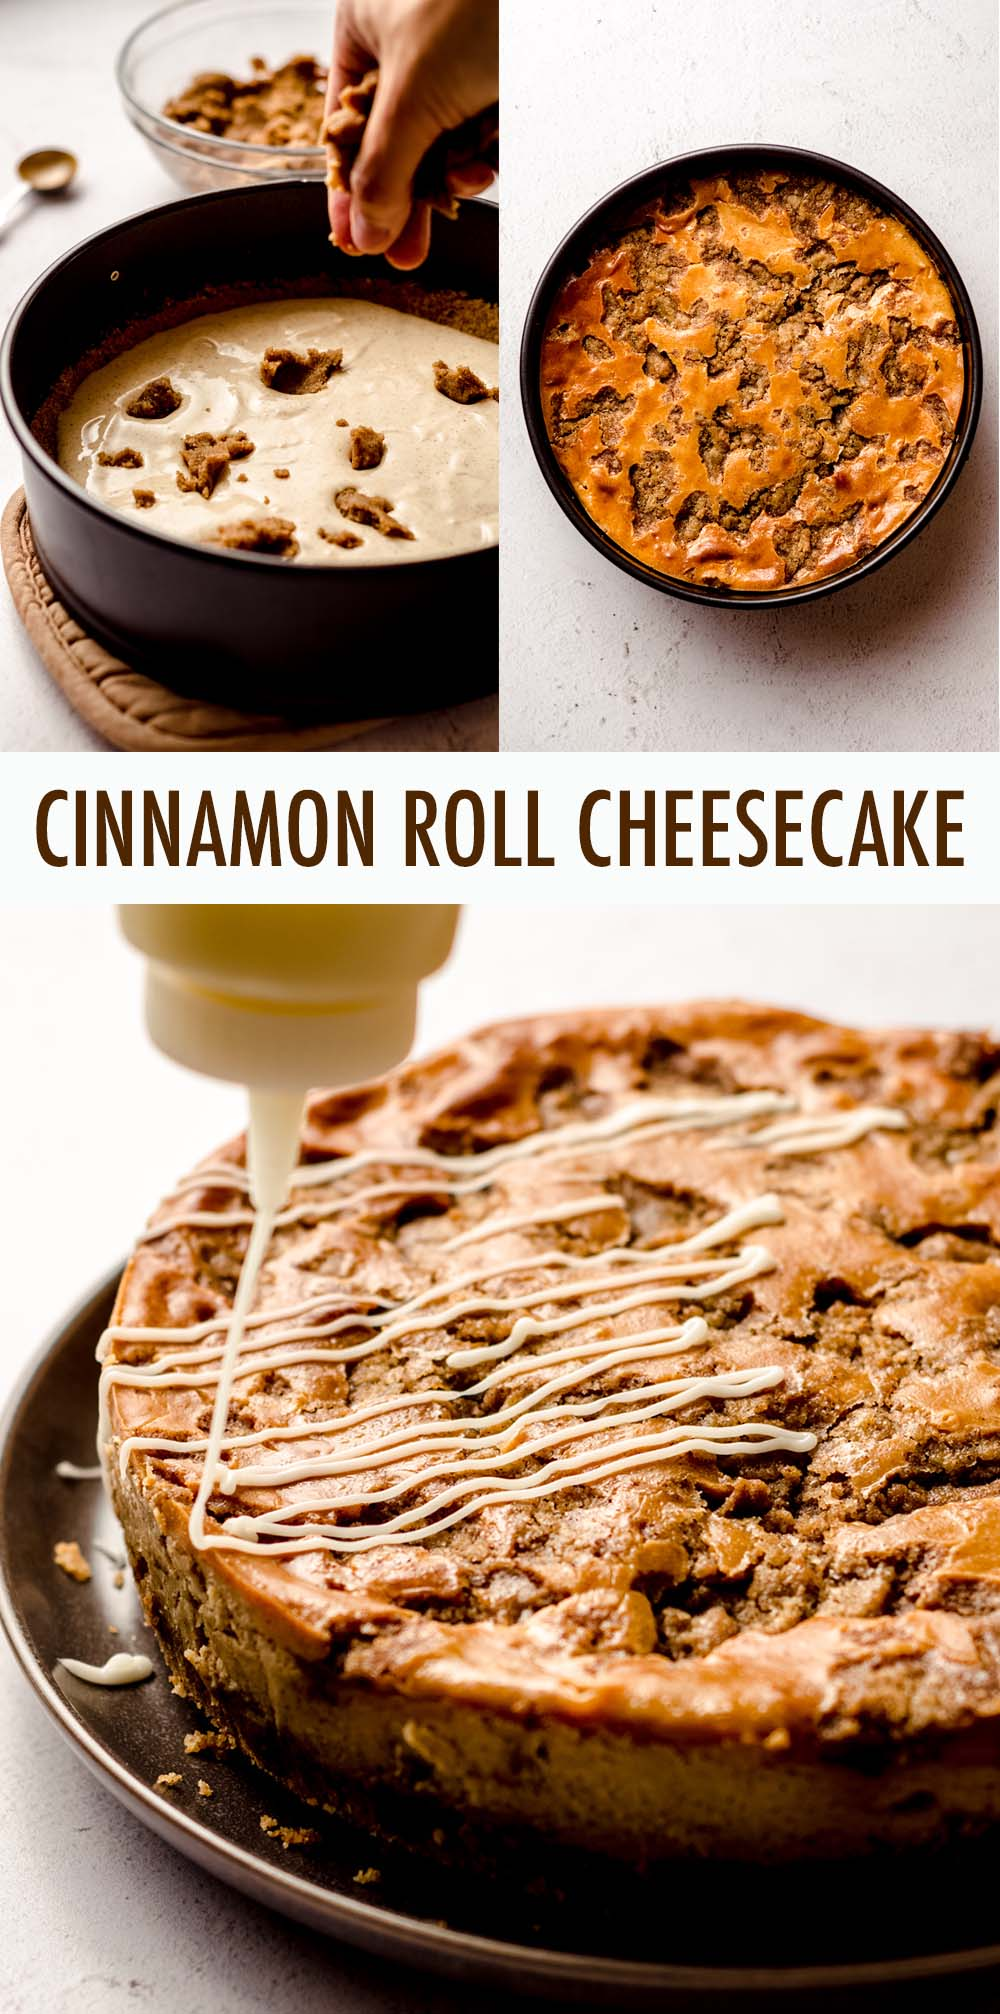 Cinnamon spiced cheesecake studded with chunks of cinnamon filling and topped with a cream cheese frosting drizzle.